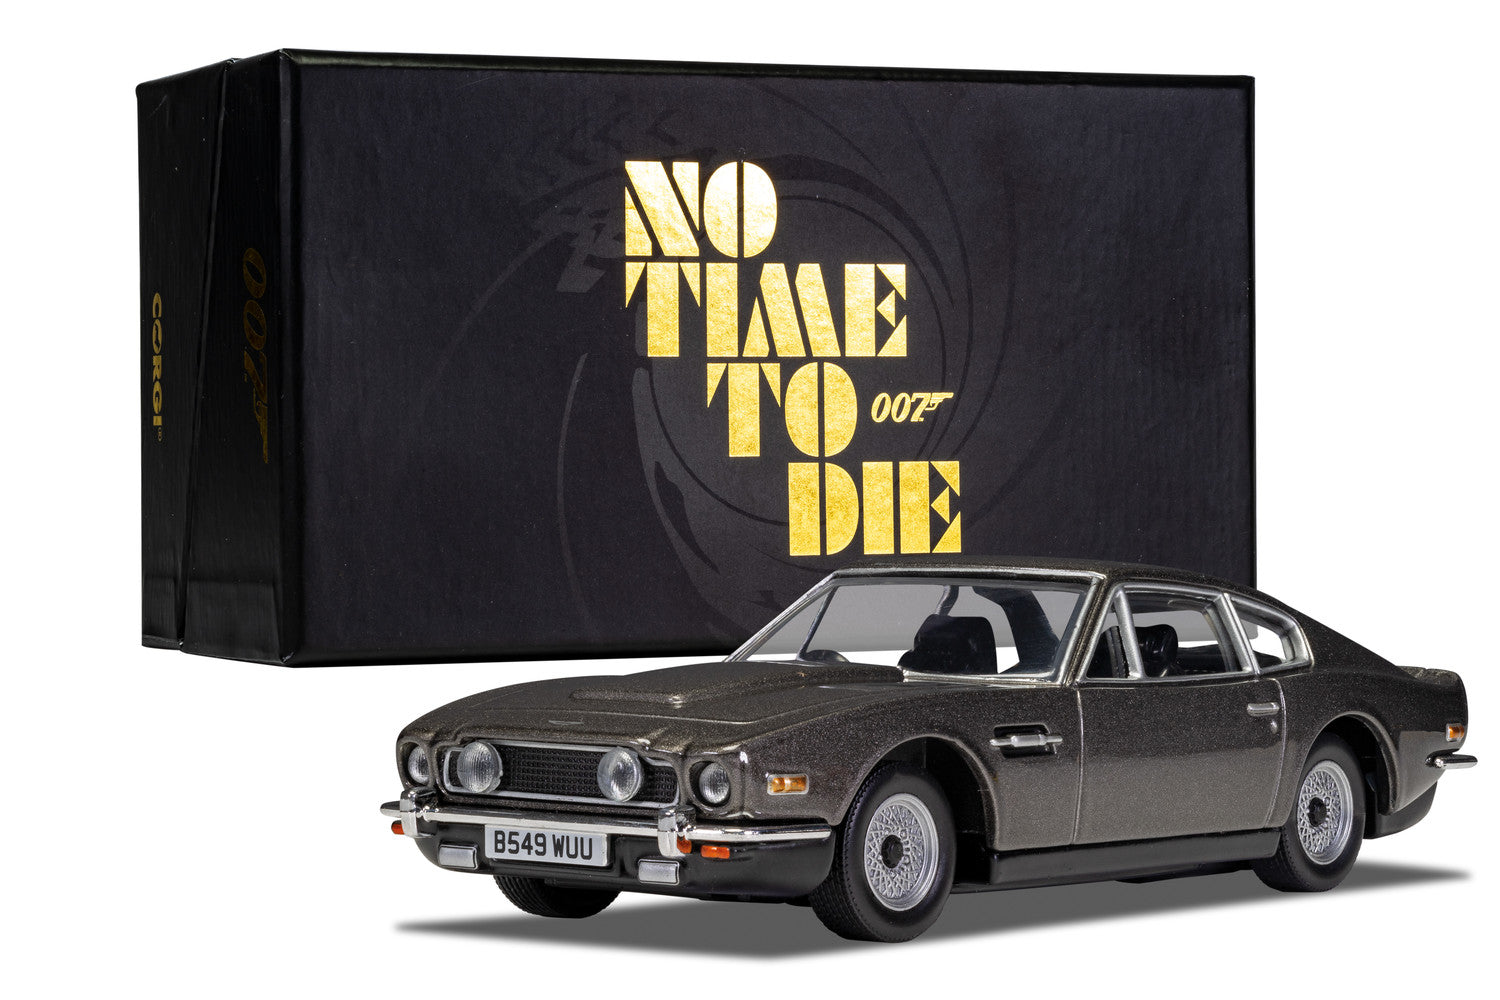 James Bond Aston Martin V8 Vantage Model Car - No Time To Die Edition - By Corgi